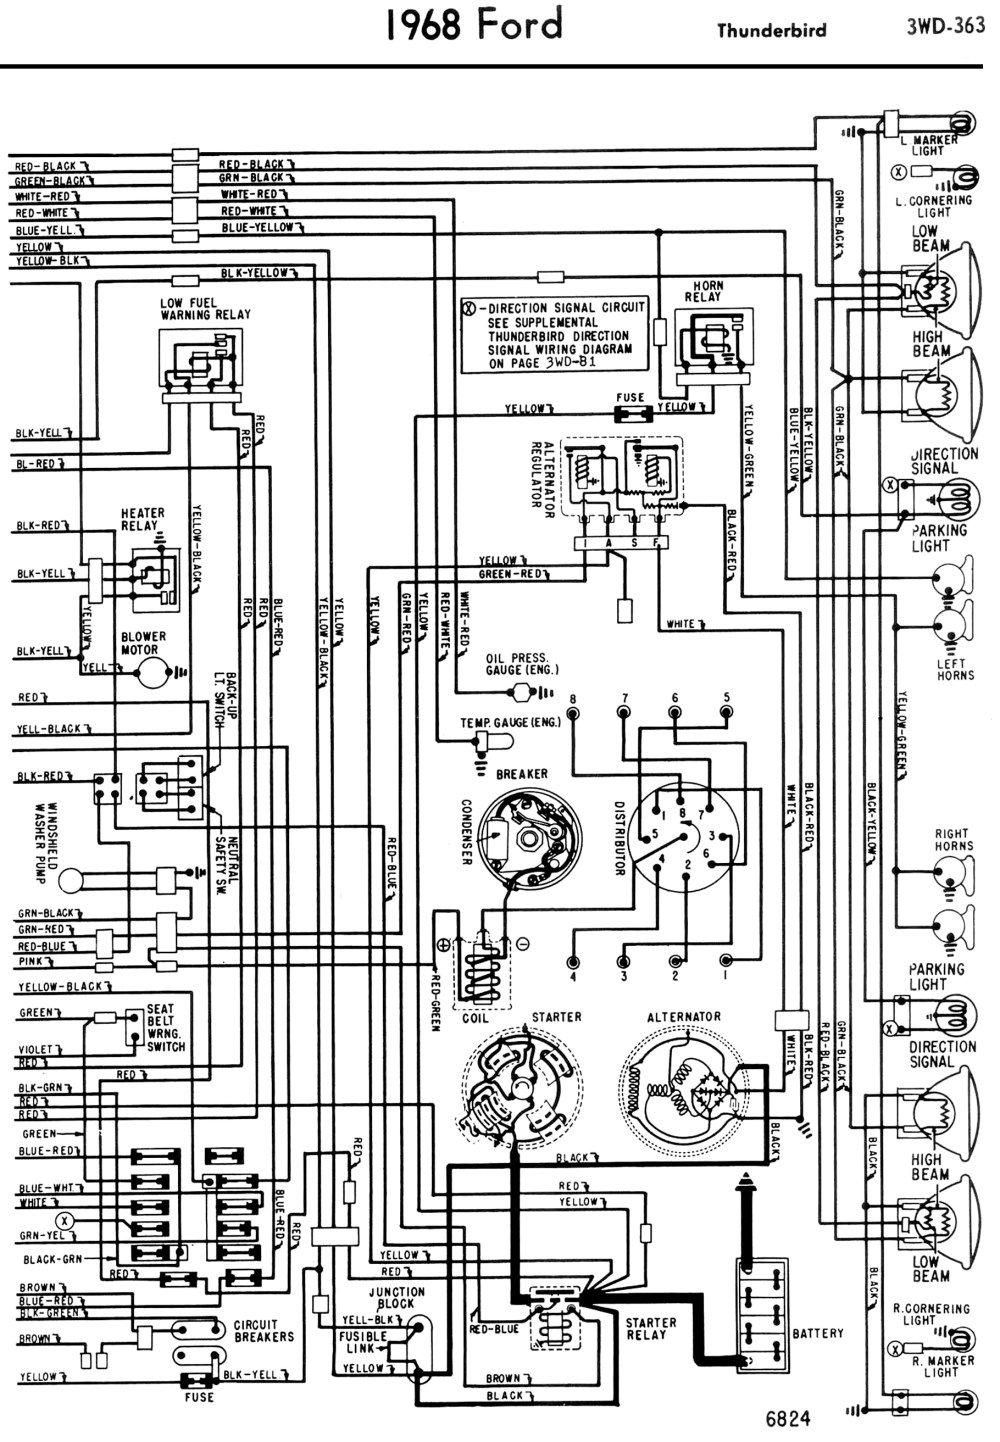 medium resolution of 1958 68 ford electrical schematics 1962 thunderbird generator light wiring diagram wiring diagram for 2003 ford